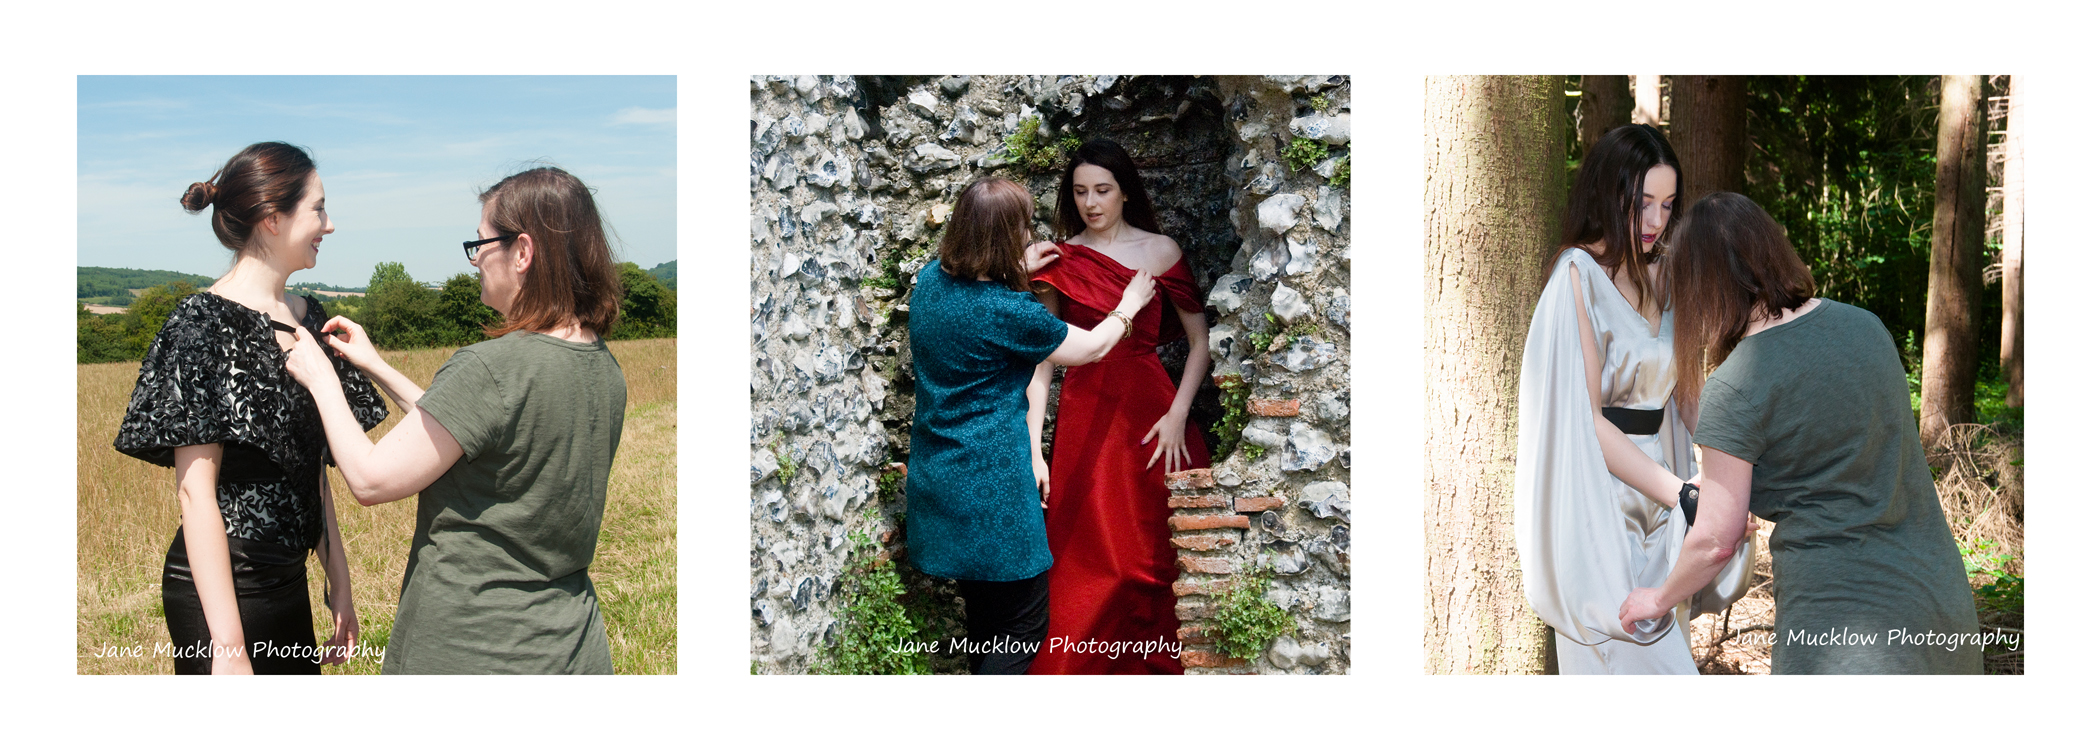 Three photos of Caroline Bruce and model Jenny in different designs by Caroline, by Jane Mucklow